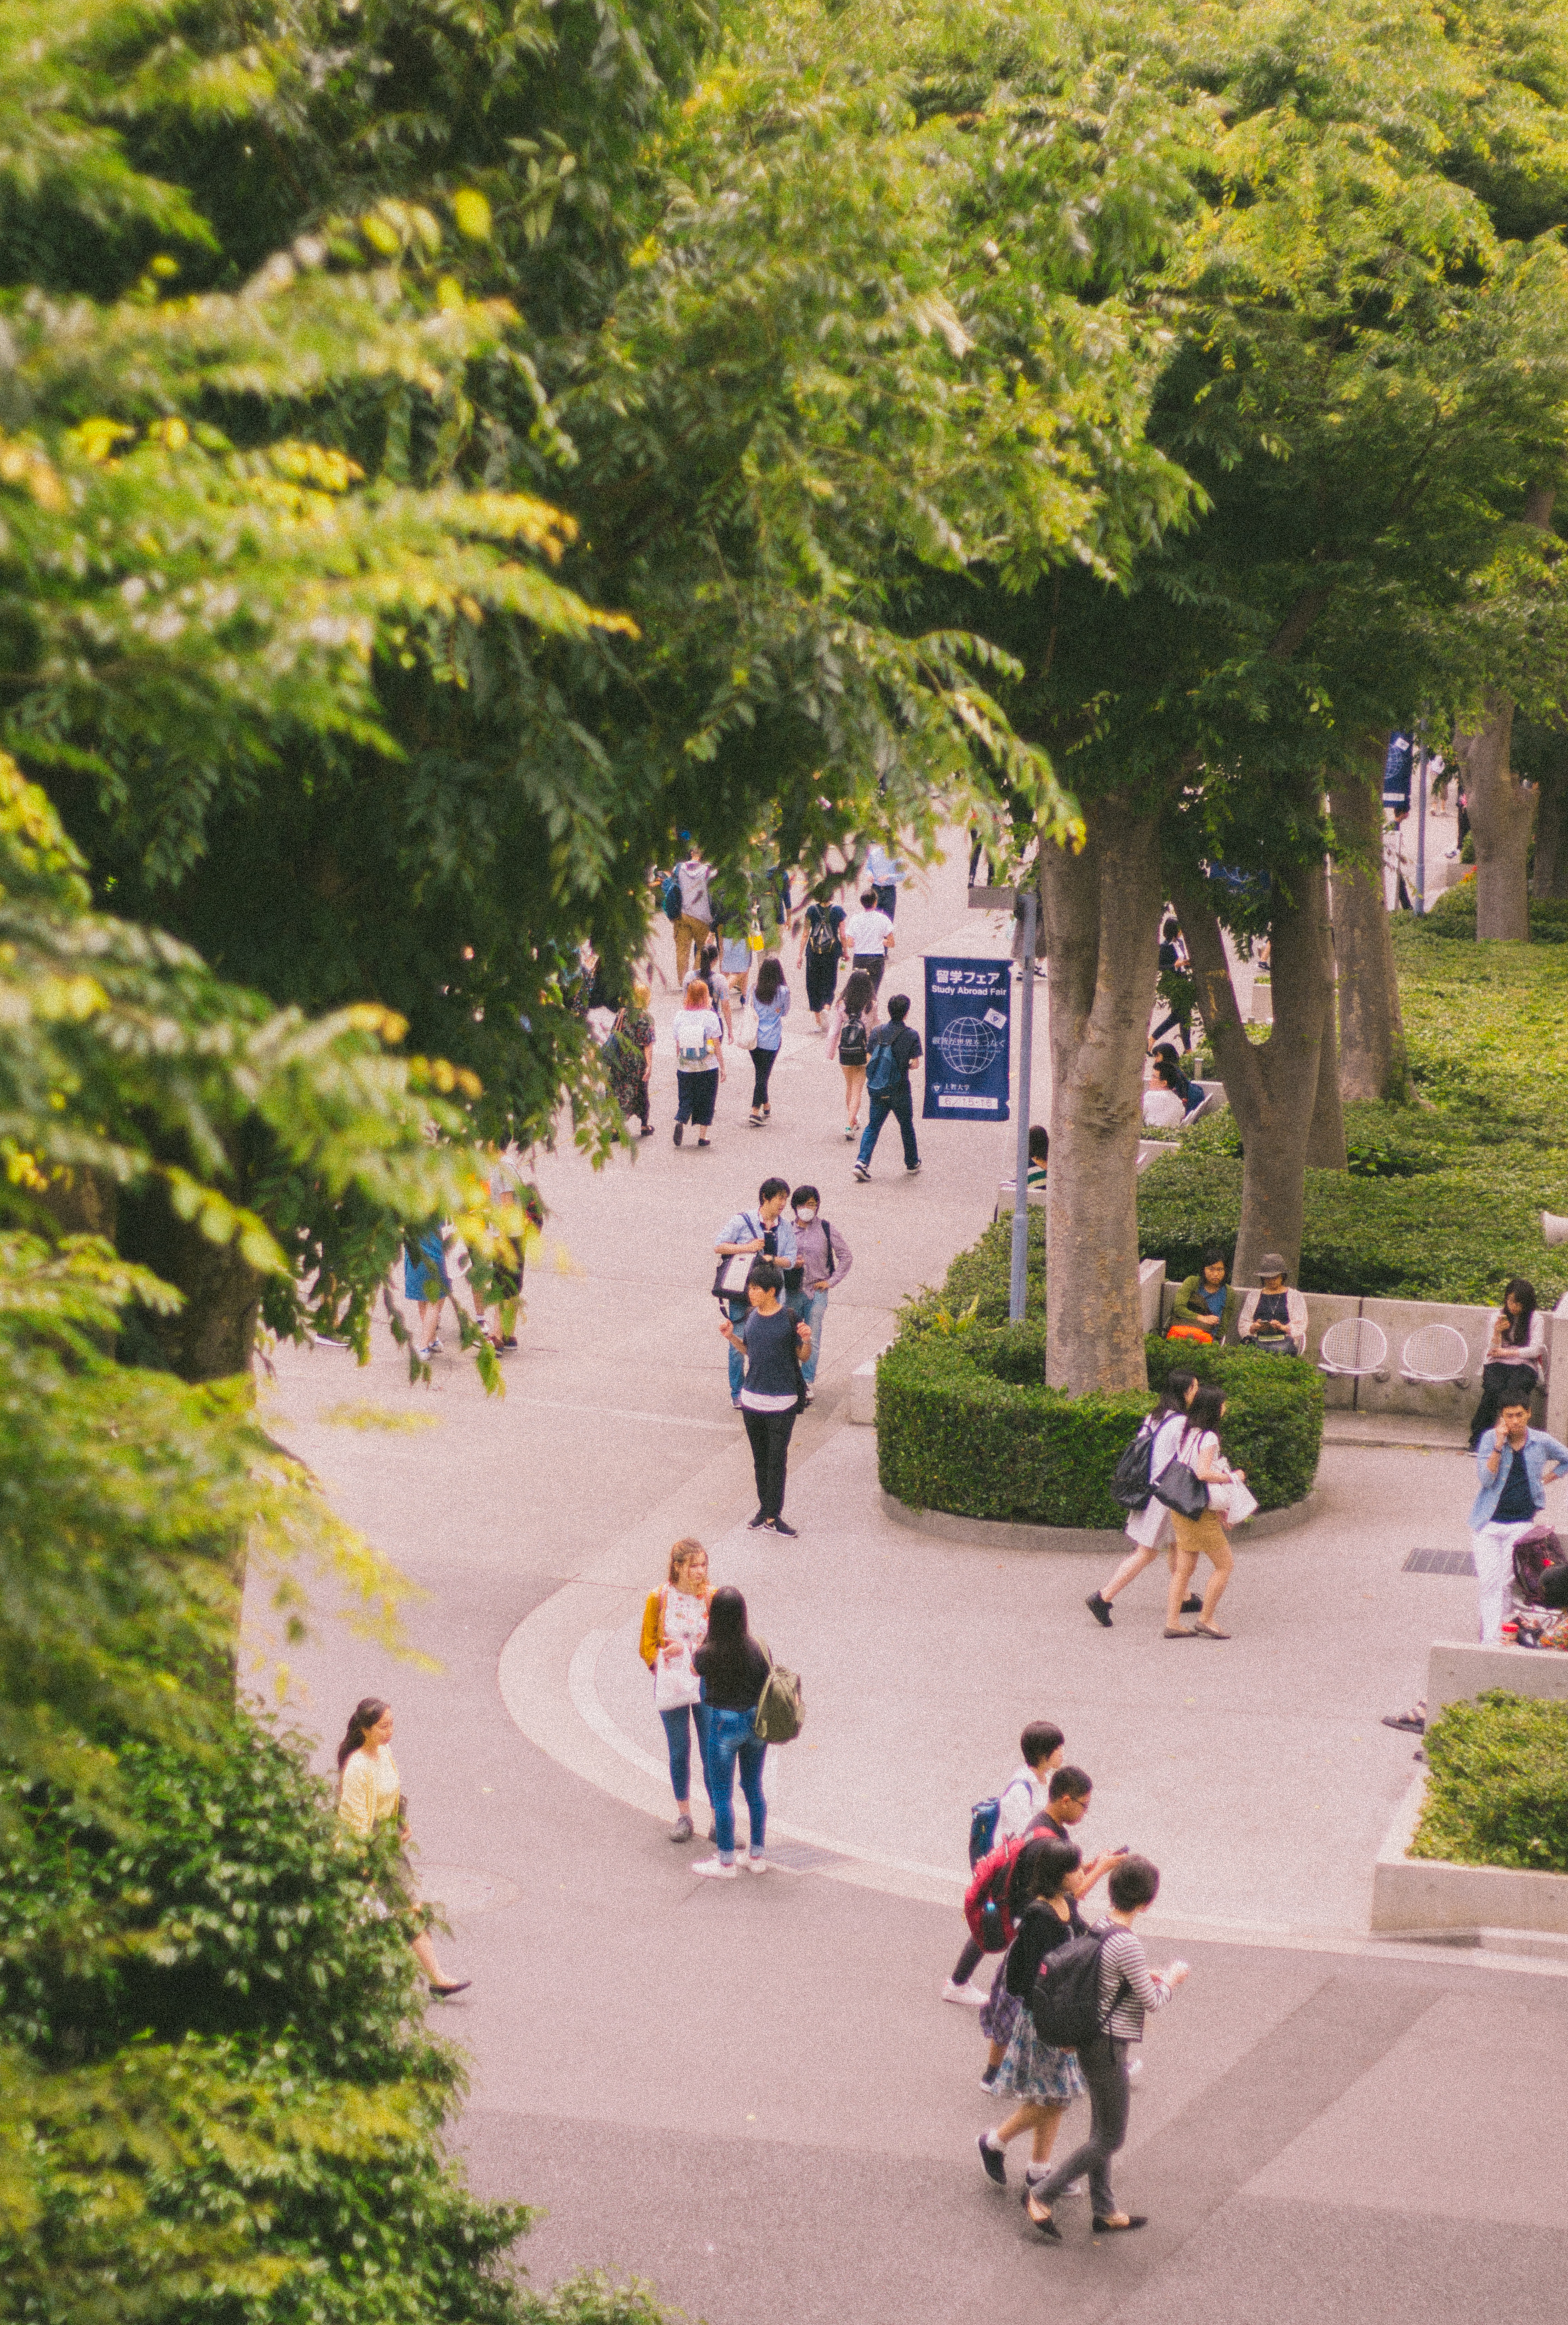 A bird's eye view of the centre of Sophia's campus, which is much smaller than U of T!